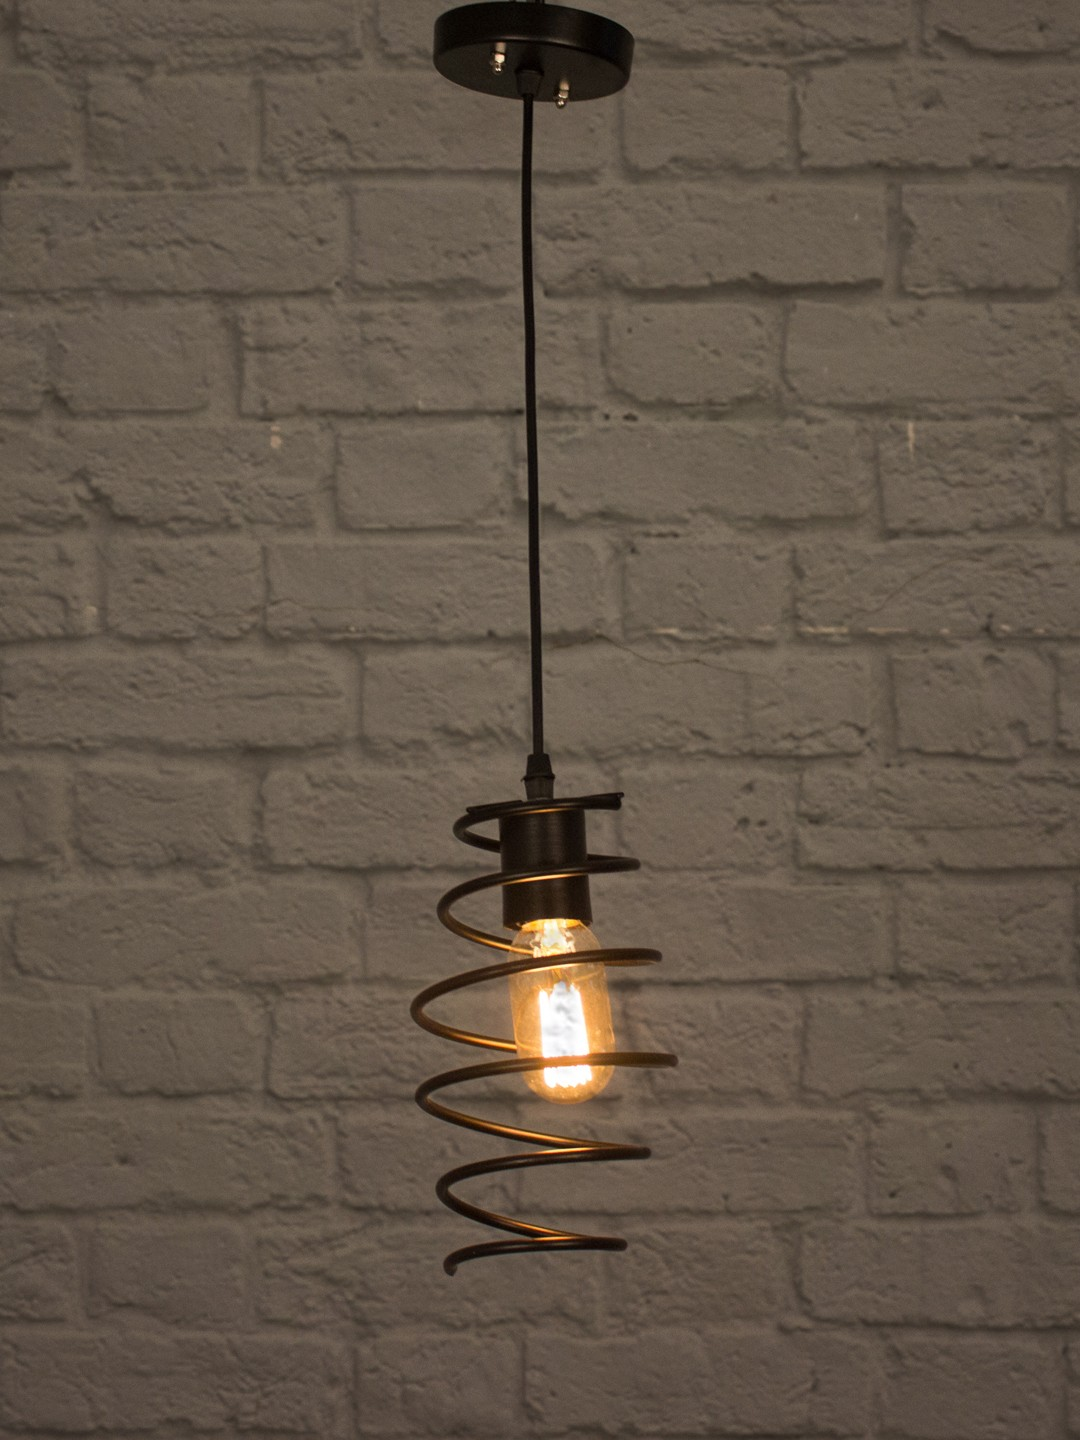 Shocker Coil Pendant Light